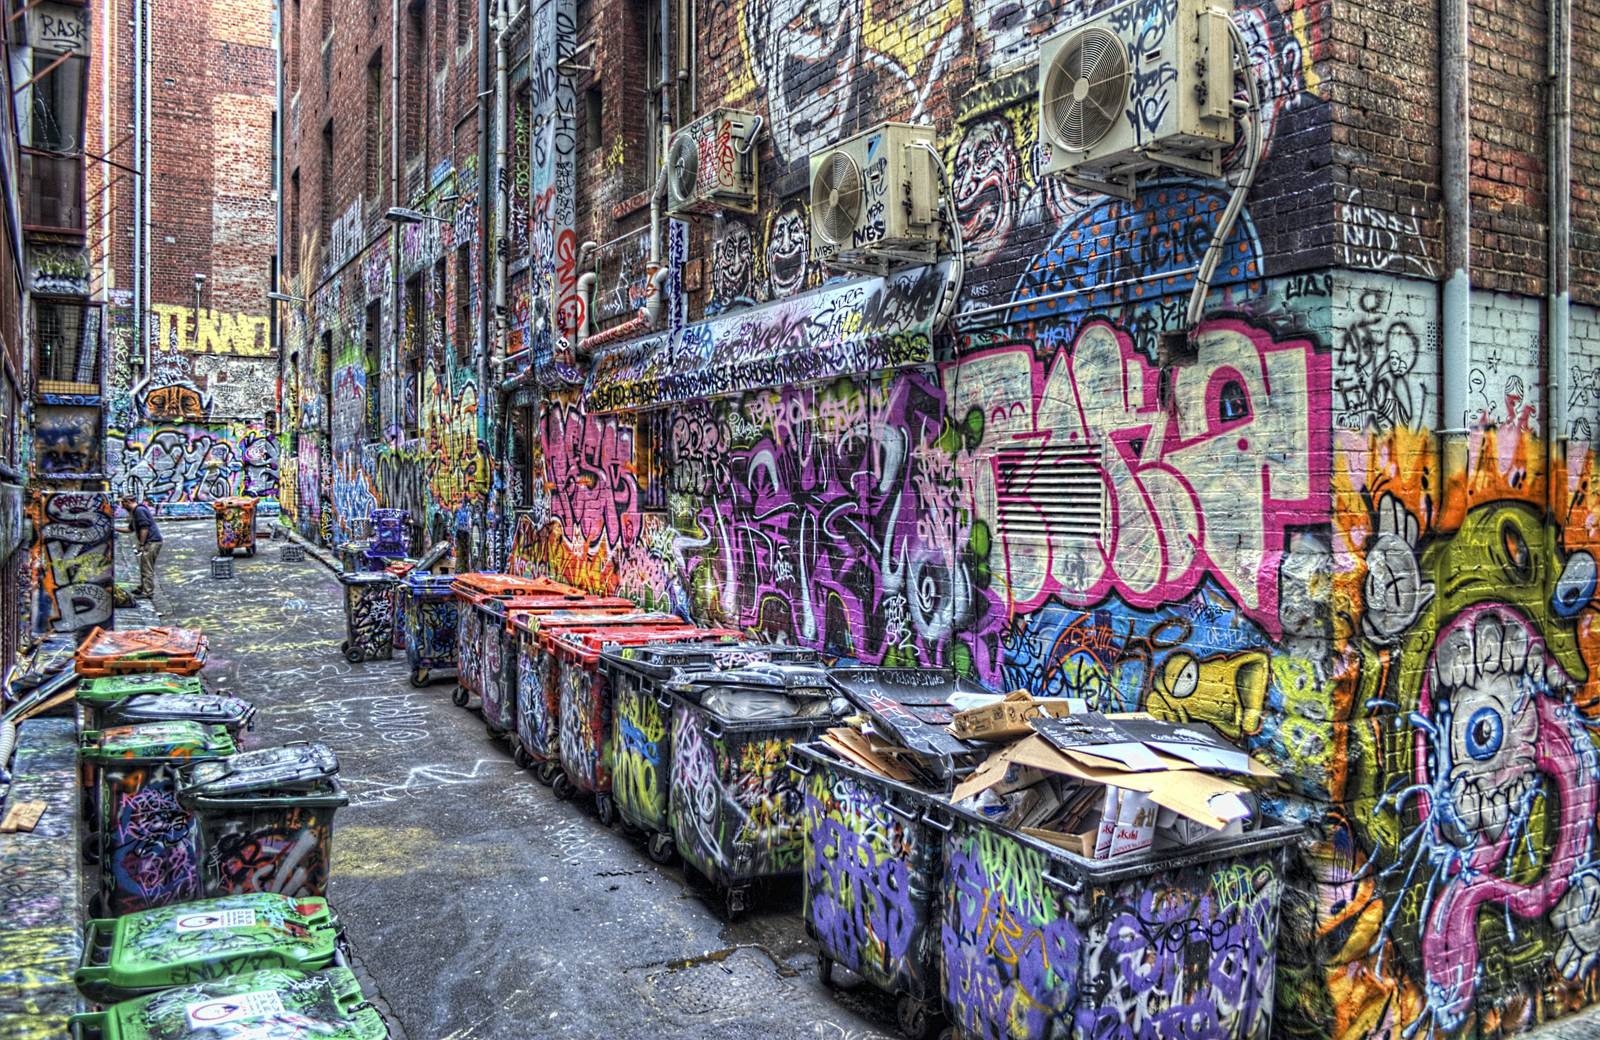 graffiti alleys of Melbourne,things to do in Australia